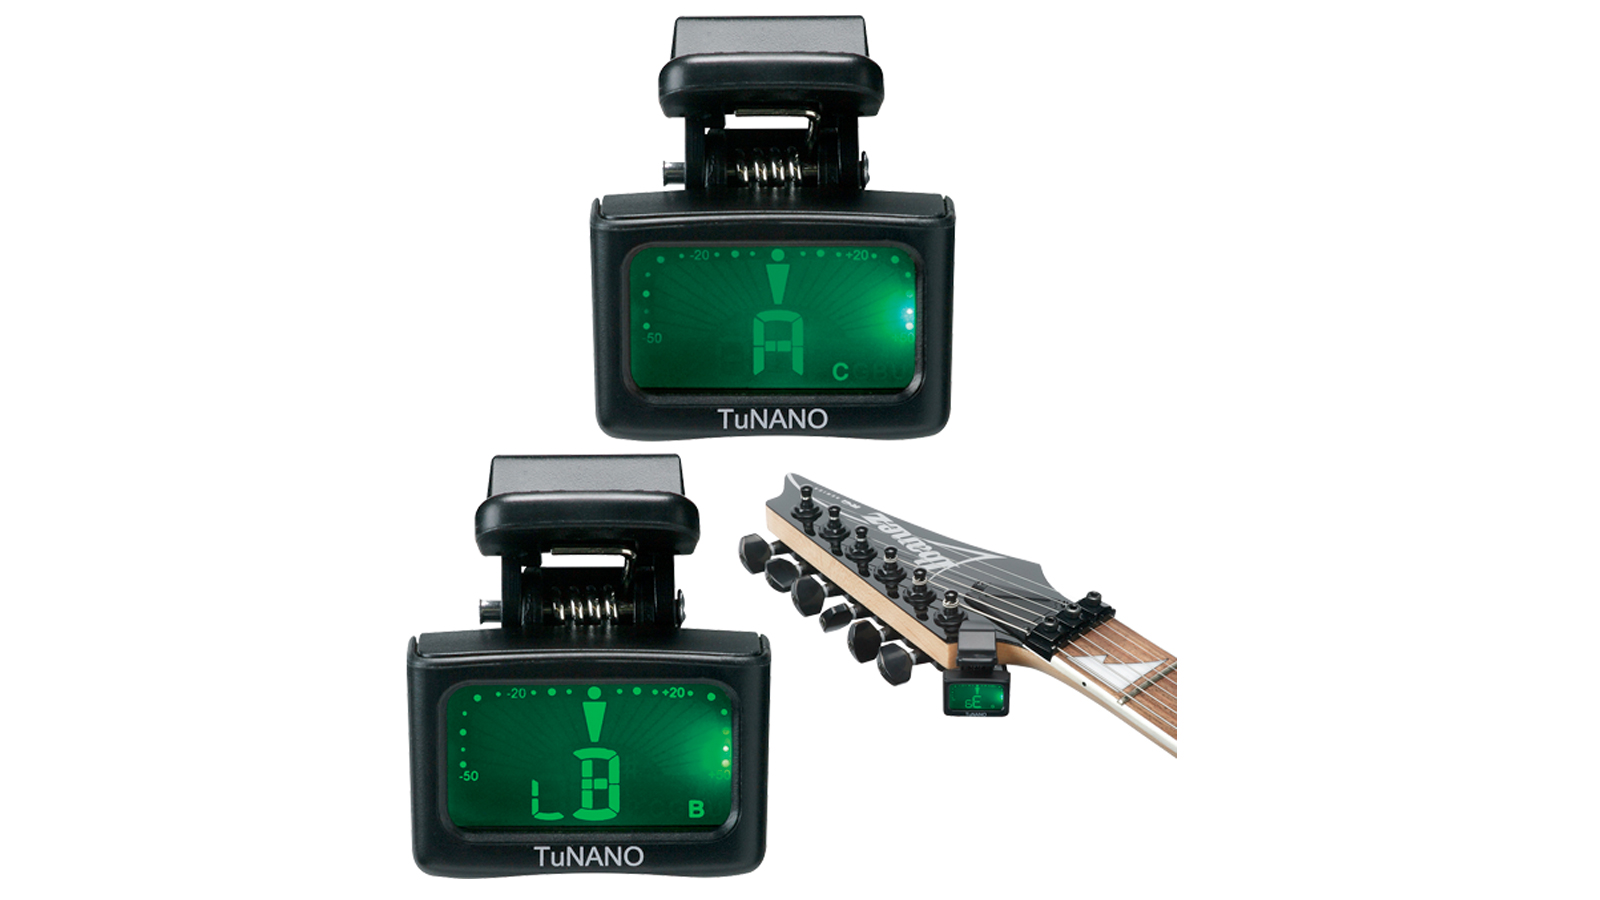 Ibanez TuNANO Clip On Tuner